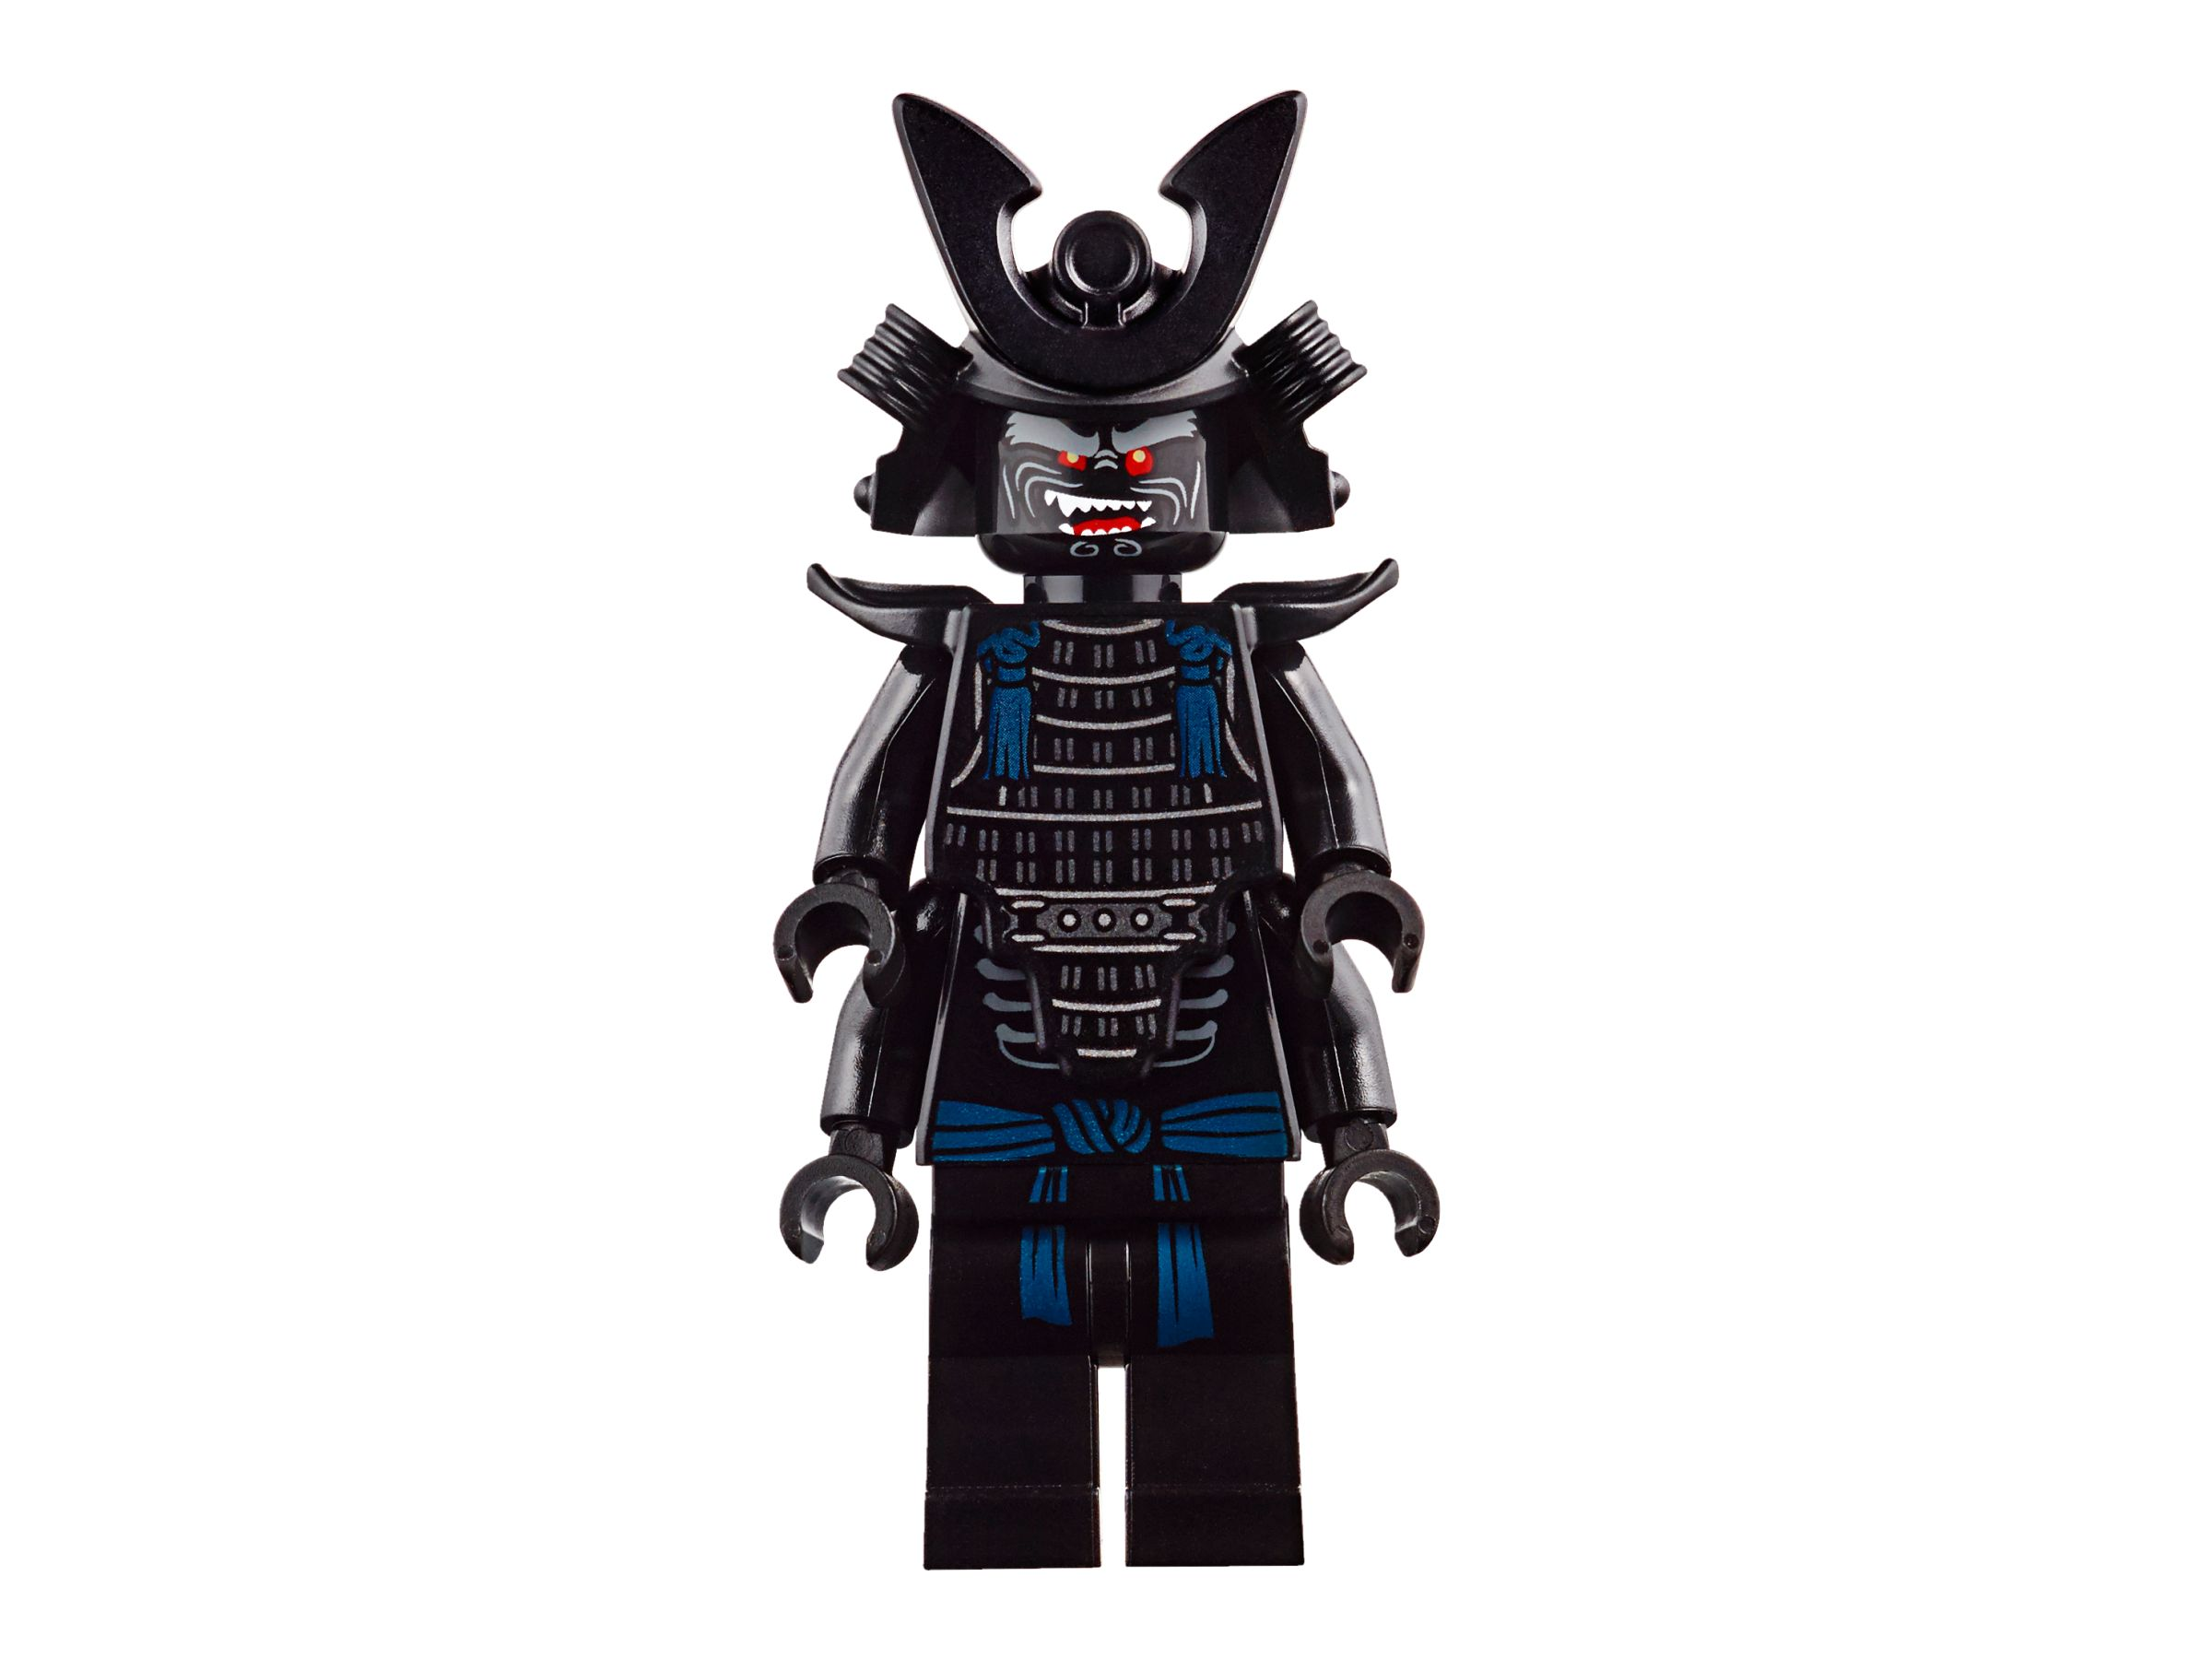 LEGO The LEGO Ninjago Movie 70656 Garmadon, Garmadon, GARMADON! LEGO_70656_alt12.jpg